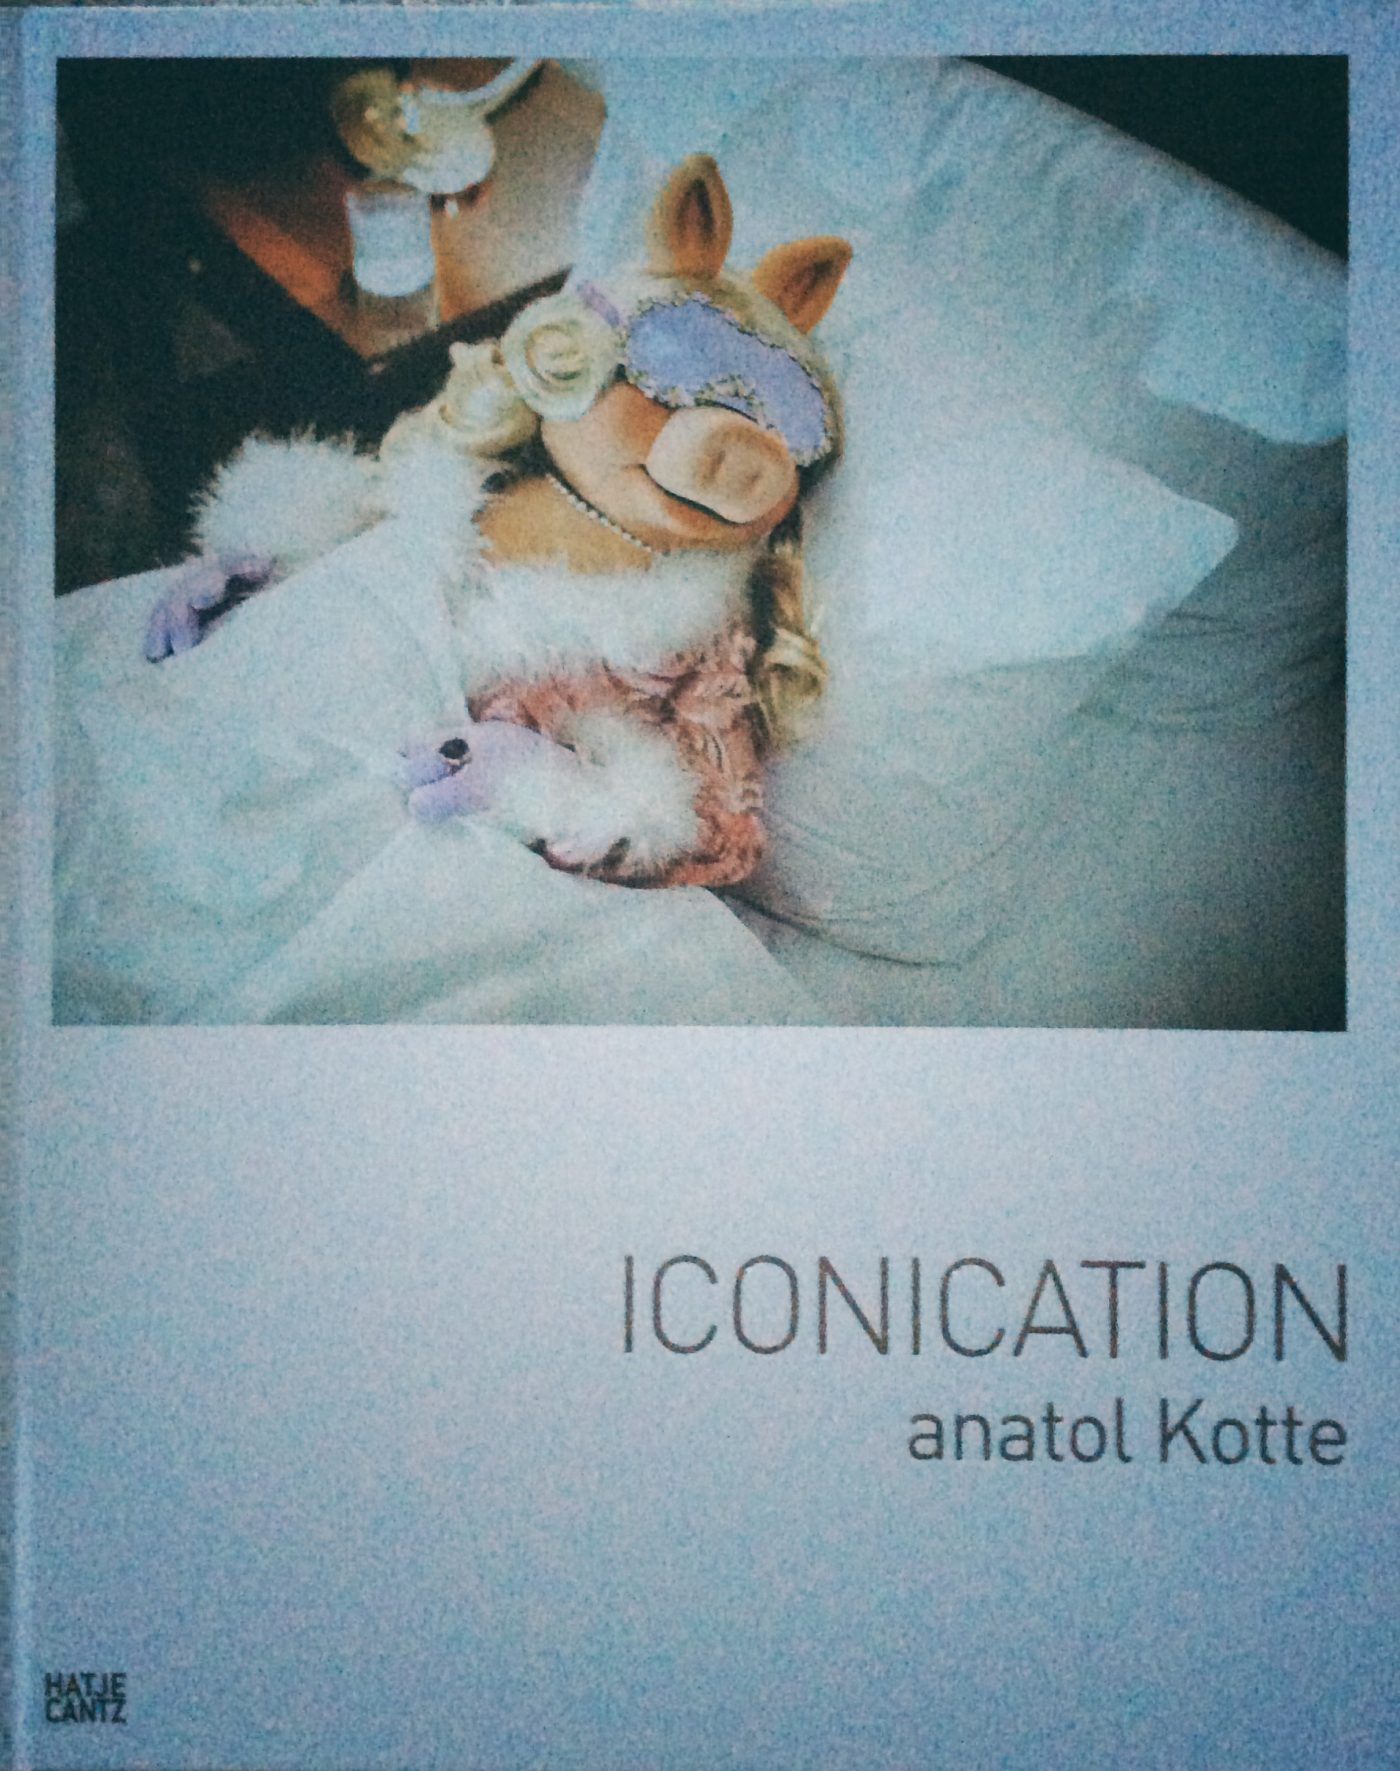 Anatol Kotte: Iconicaion